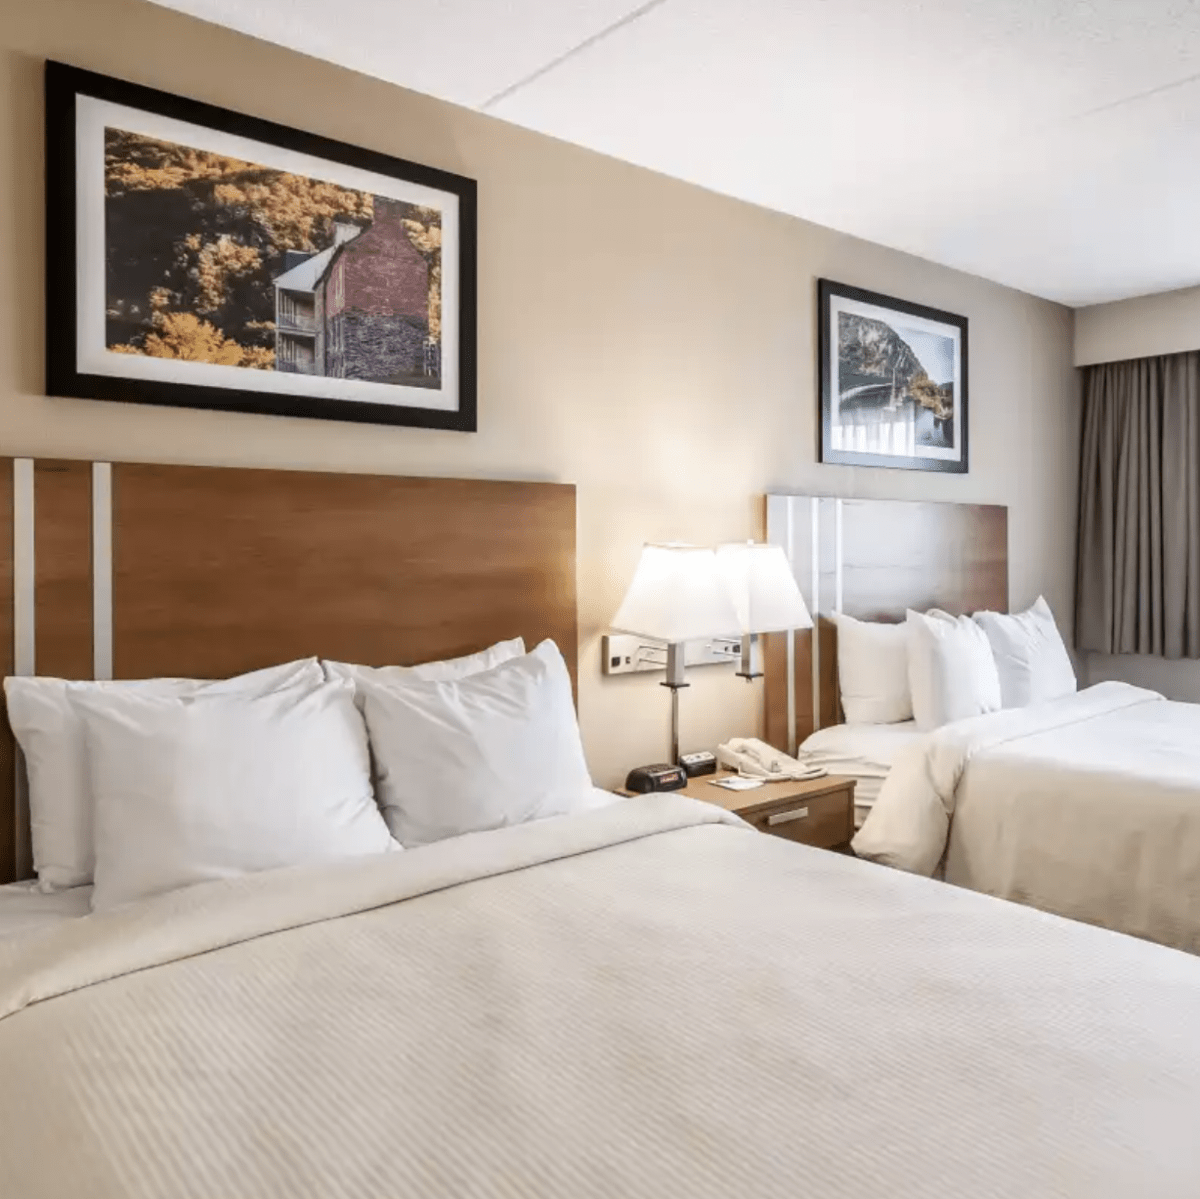 Double occupancy rooms for quilt retreat